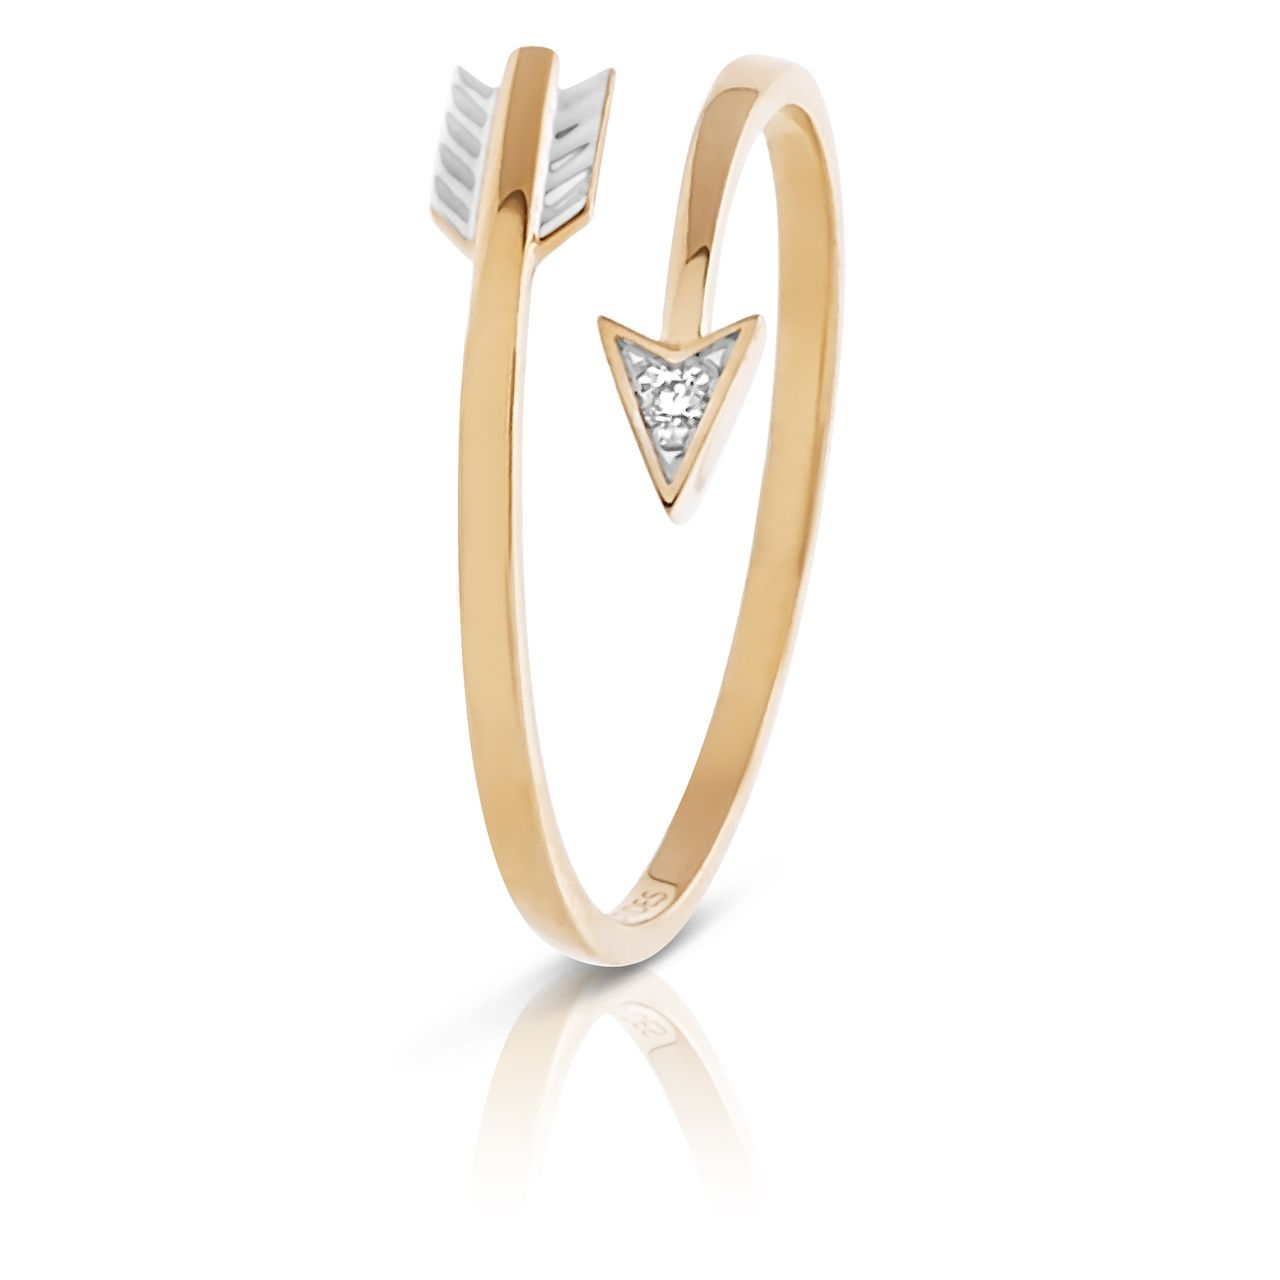 Claire Aristides Fine Jewels - Arrow Diamond Ring set in Yellow Gold, AUD$265.00 (http://www.aristidesfinejewels.com/arrow-diamond-ring-set-in-yellow-gold/)